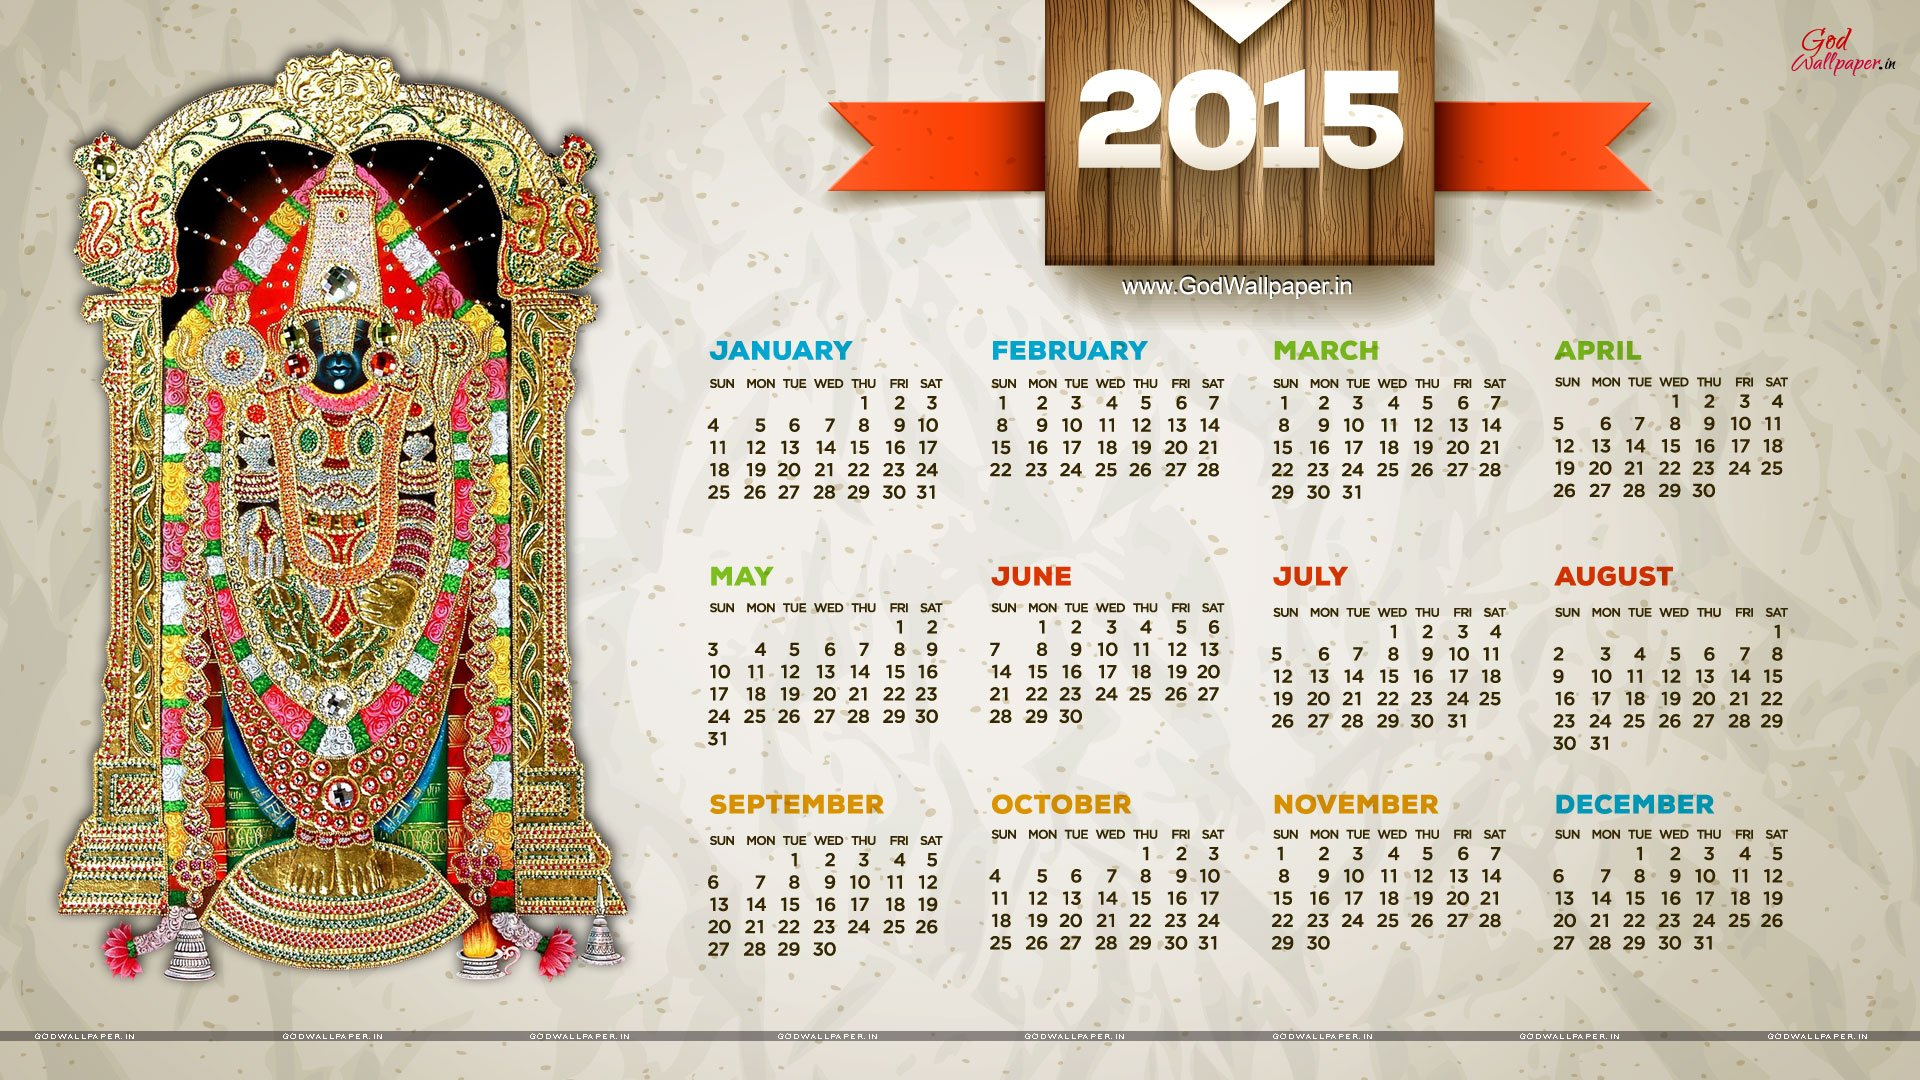 46] Wallpaper Calendar 2015 Download on WallpaperSafari 1920x1080